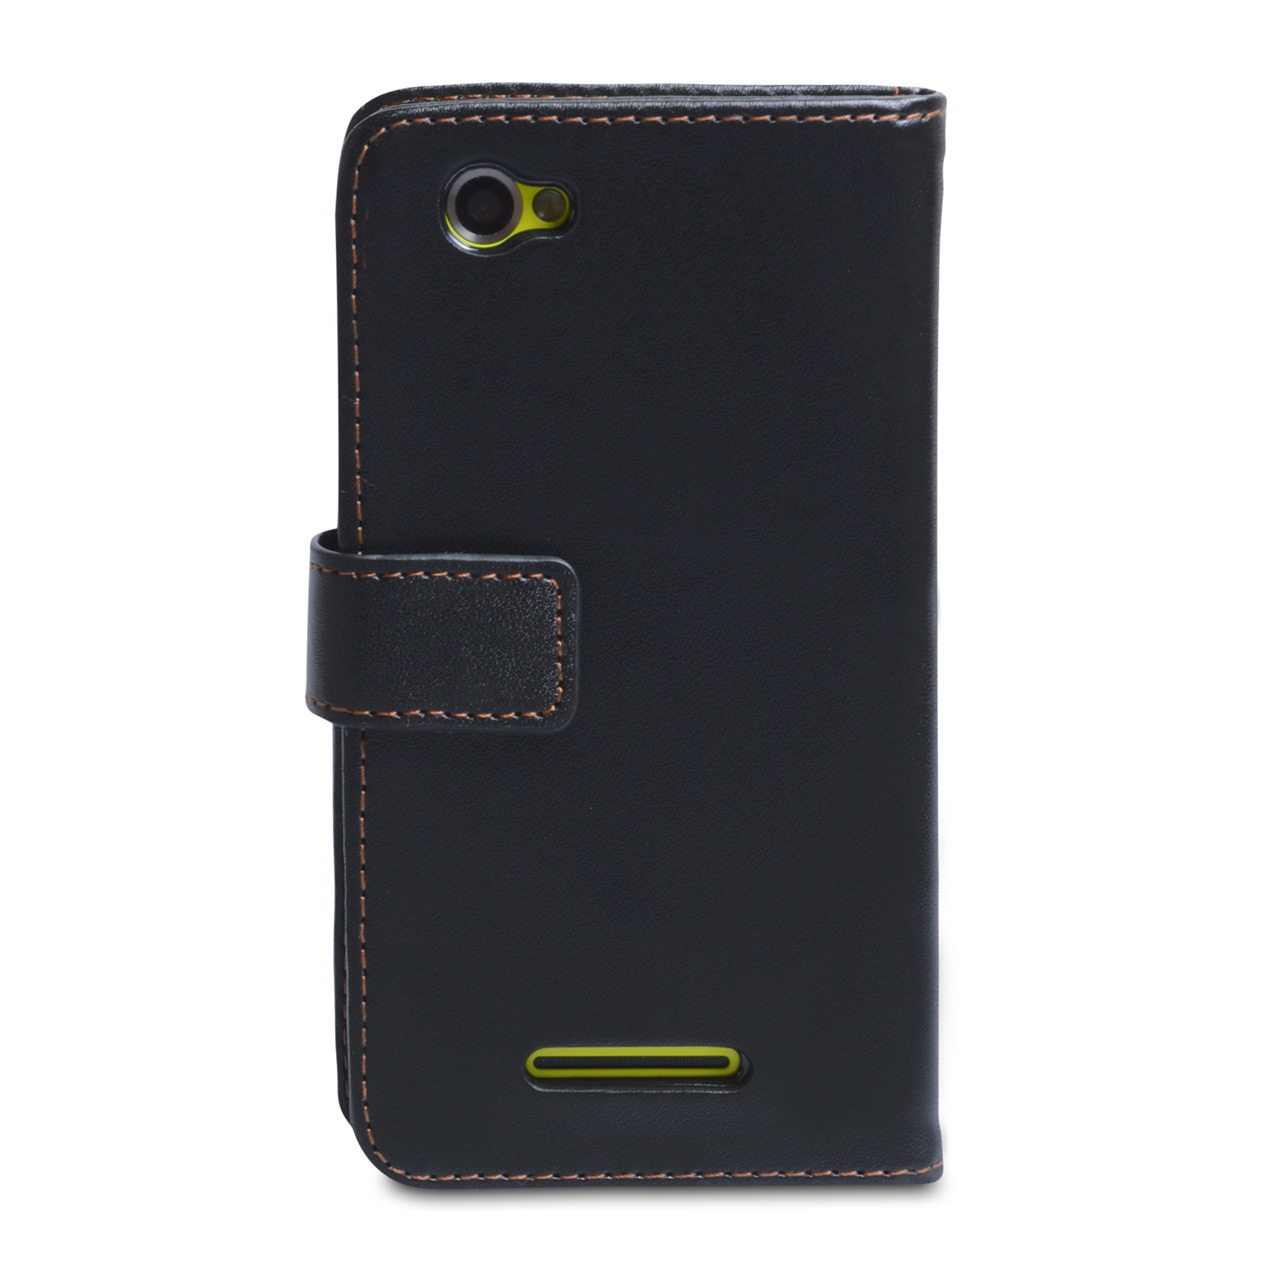 YouSave Accessories Sony Xperia M Black Leather Effect Wallet Case